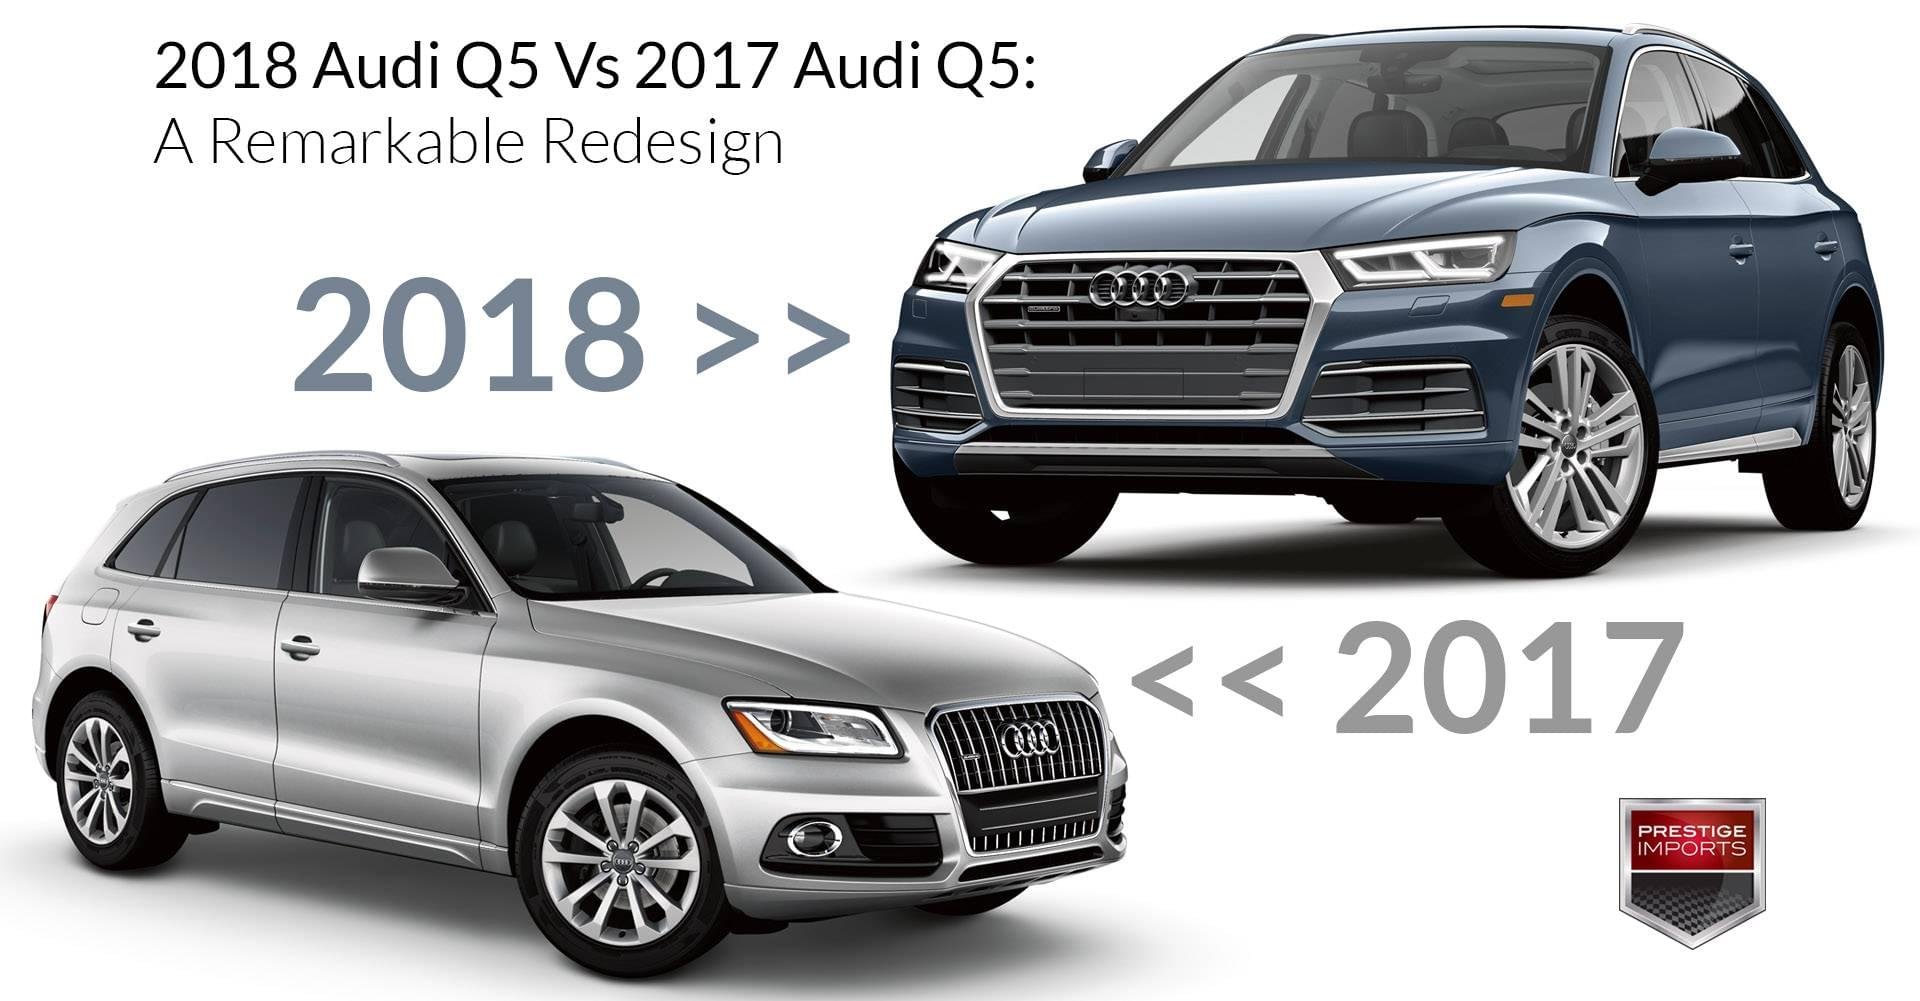 hight resolution of 2018 audi q5 vs 2017 audi q5 a remarkable redesign